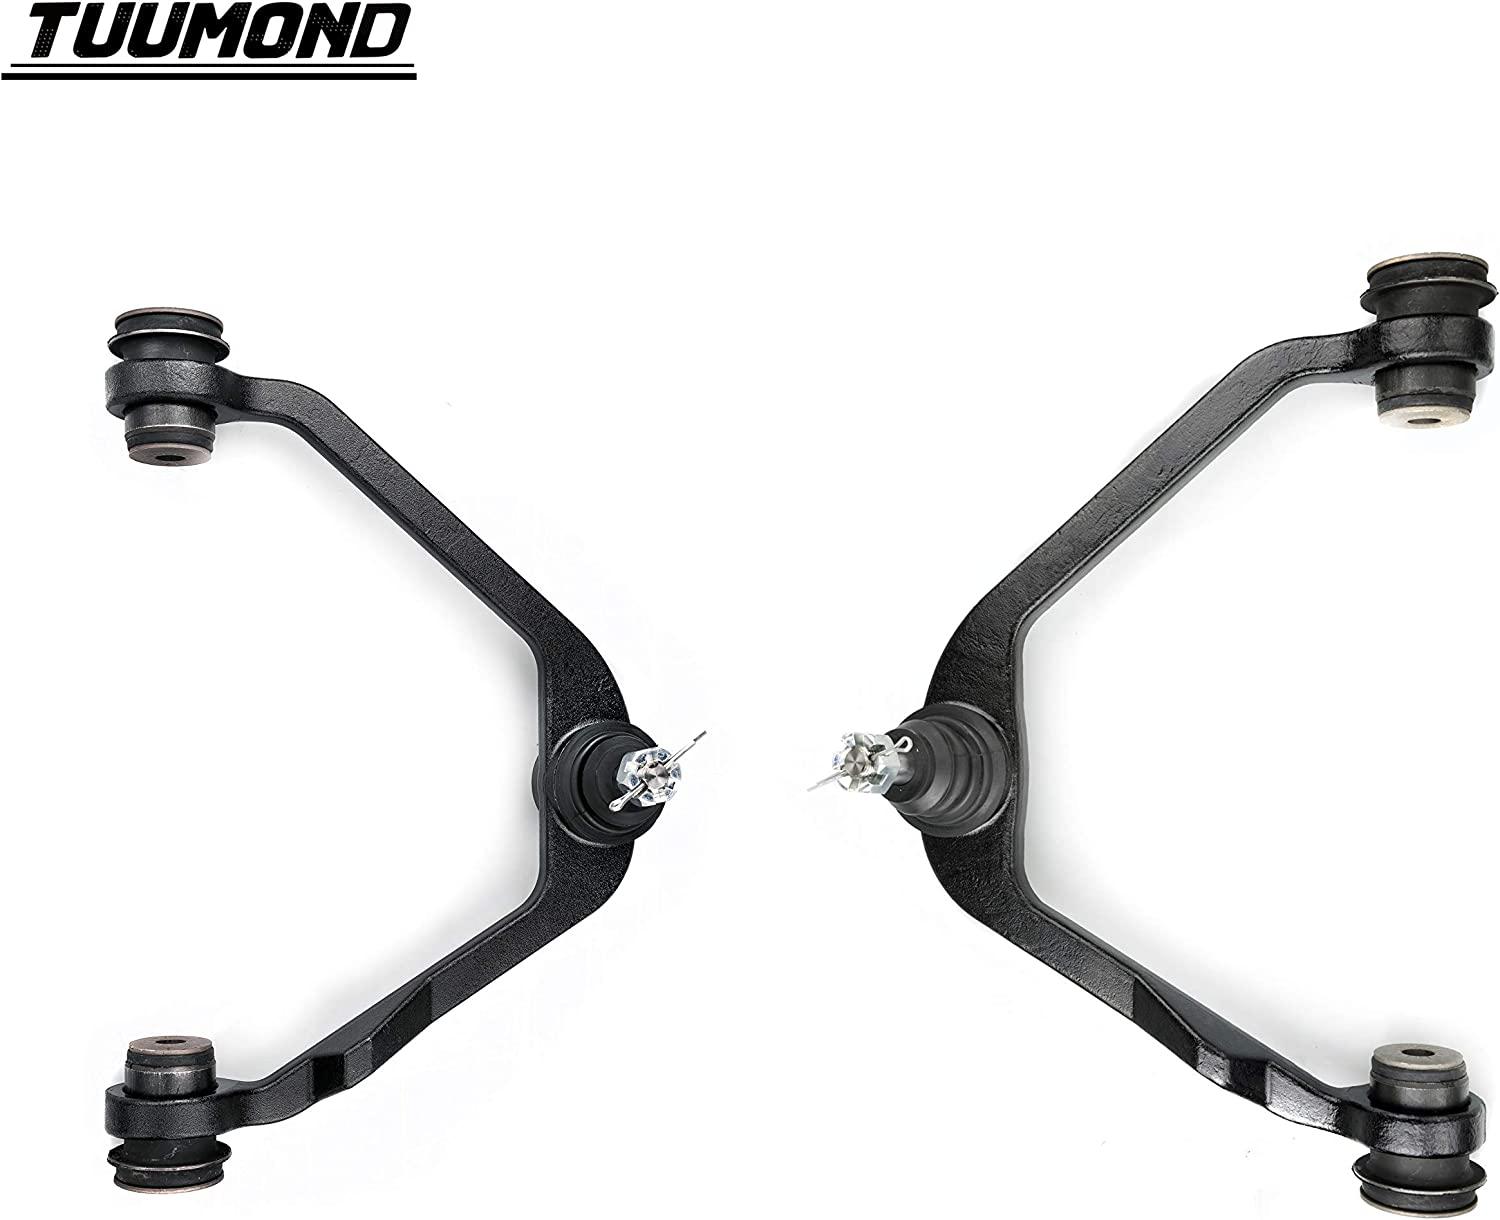 TUUMOND Front Upper Control Arm with Ball Joint Bushing Assembly for 97-02 Ford Expedition / 97-03 Ford F-150 Pickup / 04-04 Ford F-150 Heritage and Lightning Pickup K8726 K8728